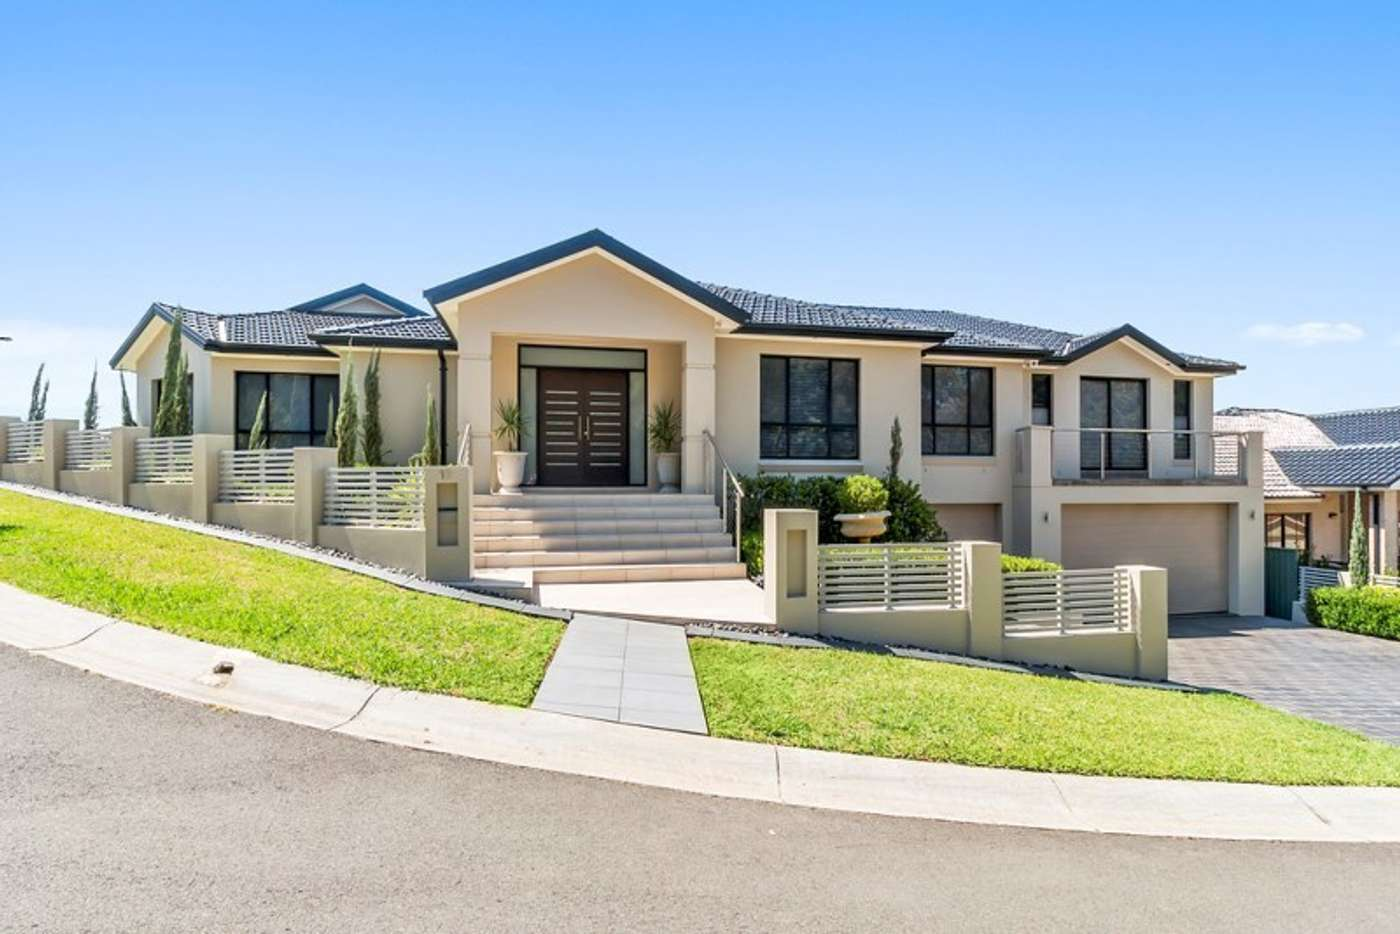 Main view of Homely house listing, 10 Rafter Crescent, Abbotsbury NSW 2176